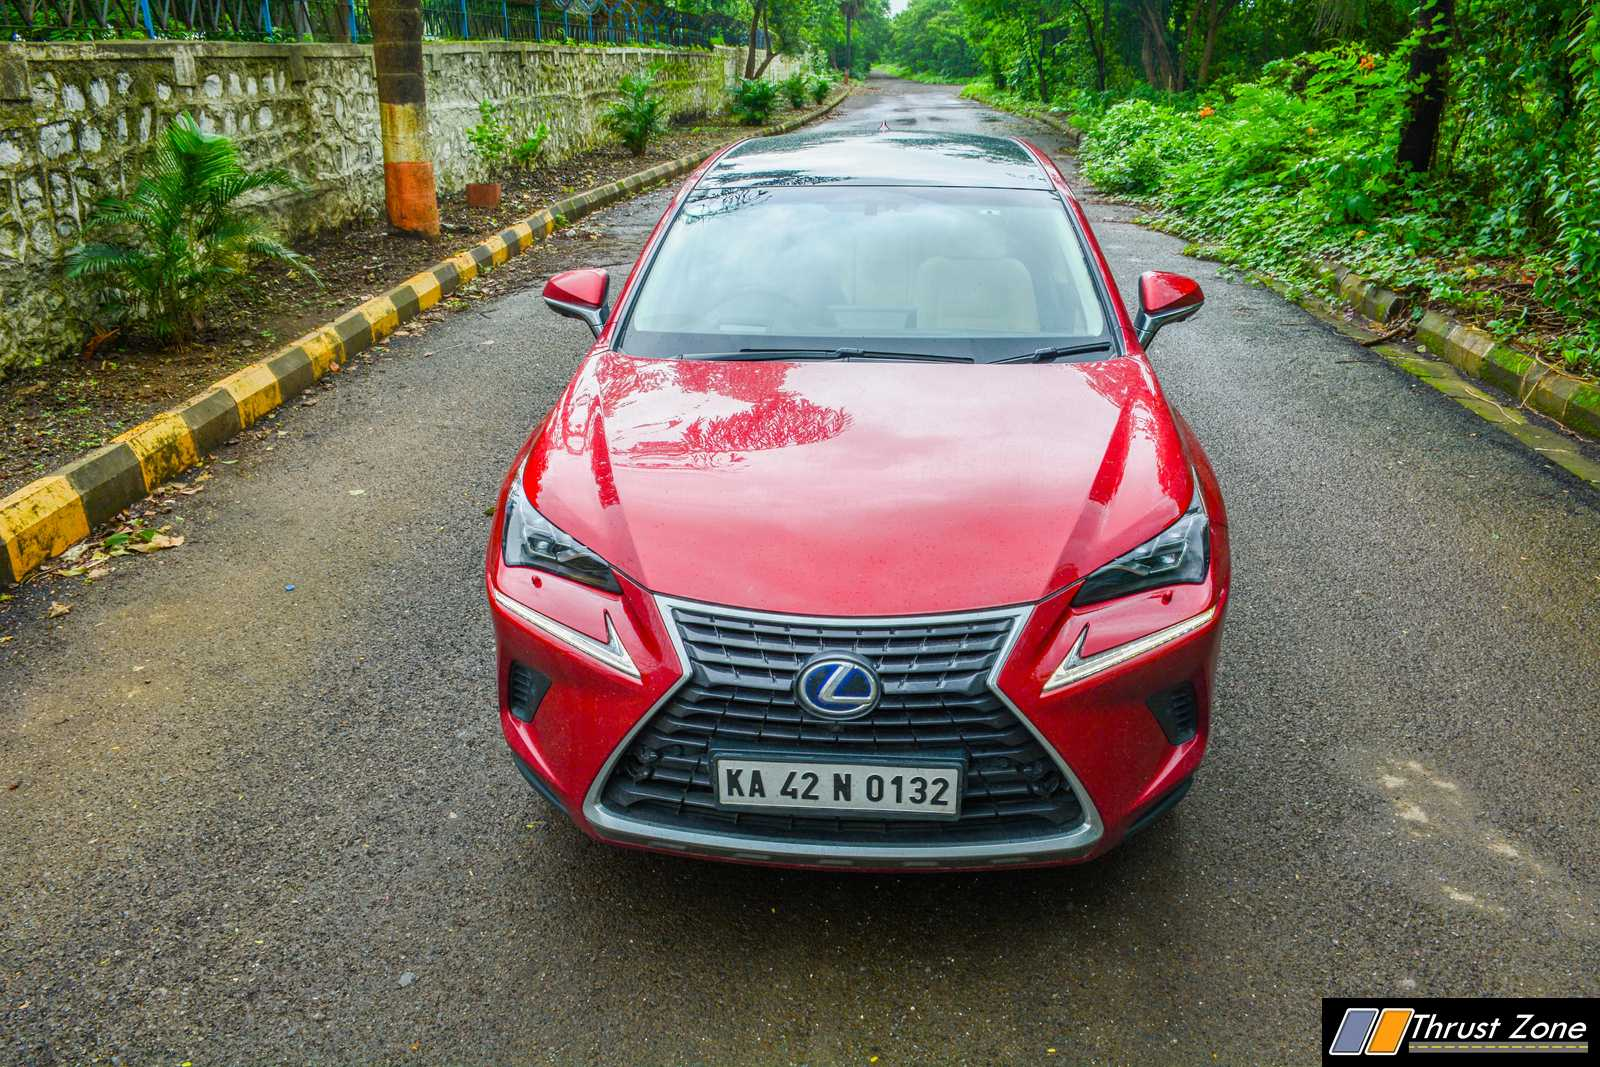 https://www.thrustzone.com/wp-content/uploads/2018/07/2018-Lexus-NX300h-India-Review-21.jpg